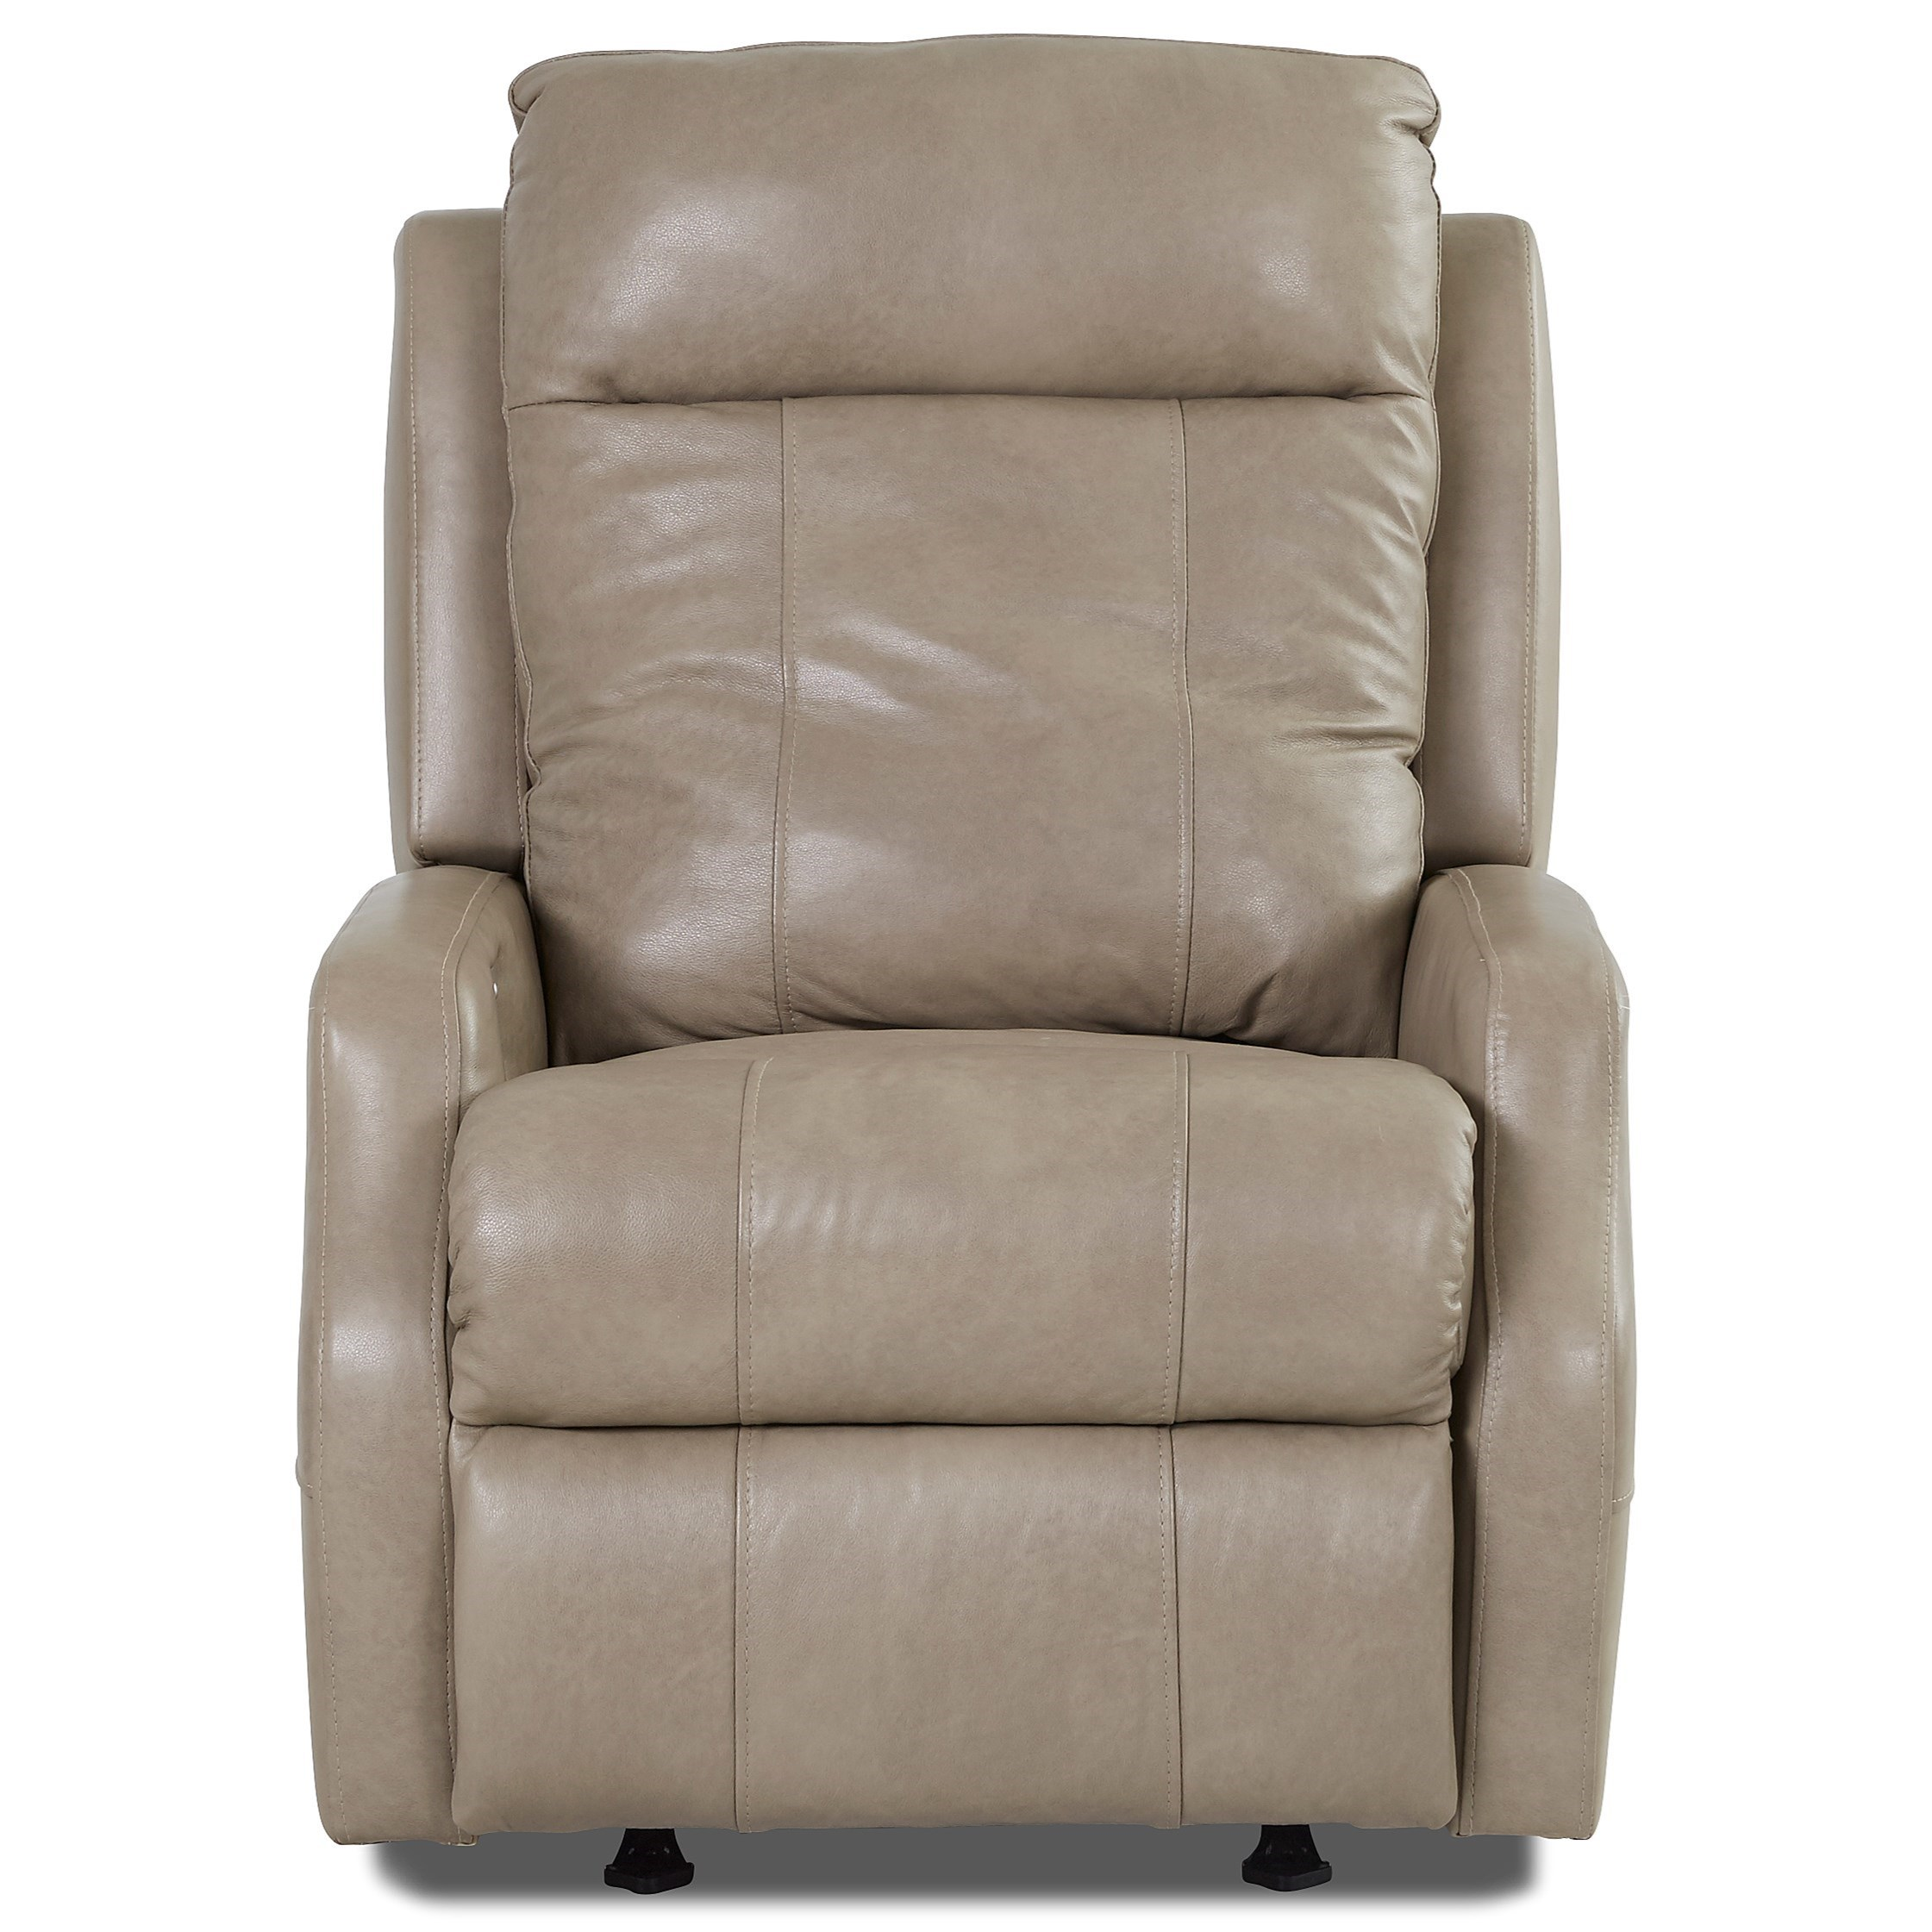 Contemporary Rocker Glider Recliner